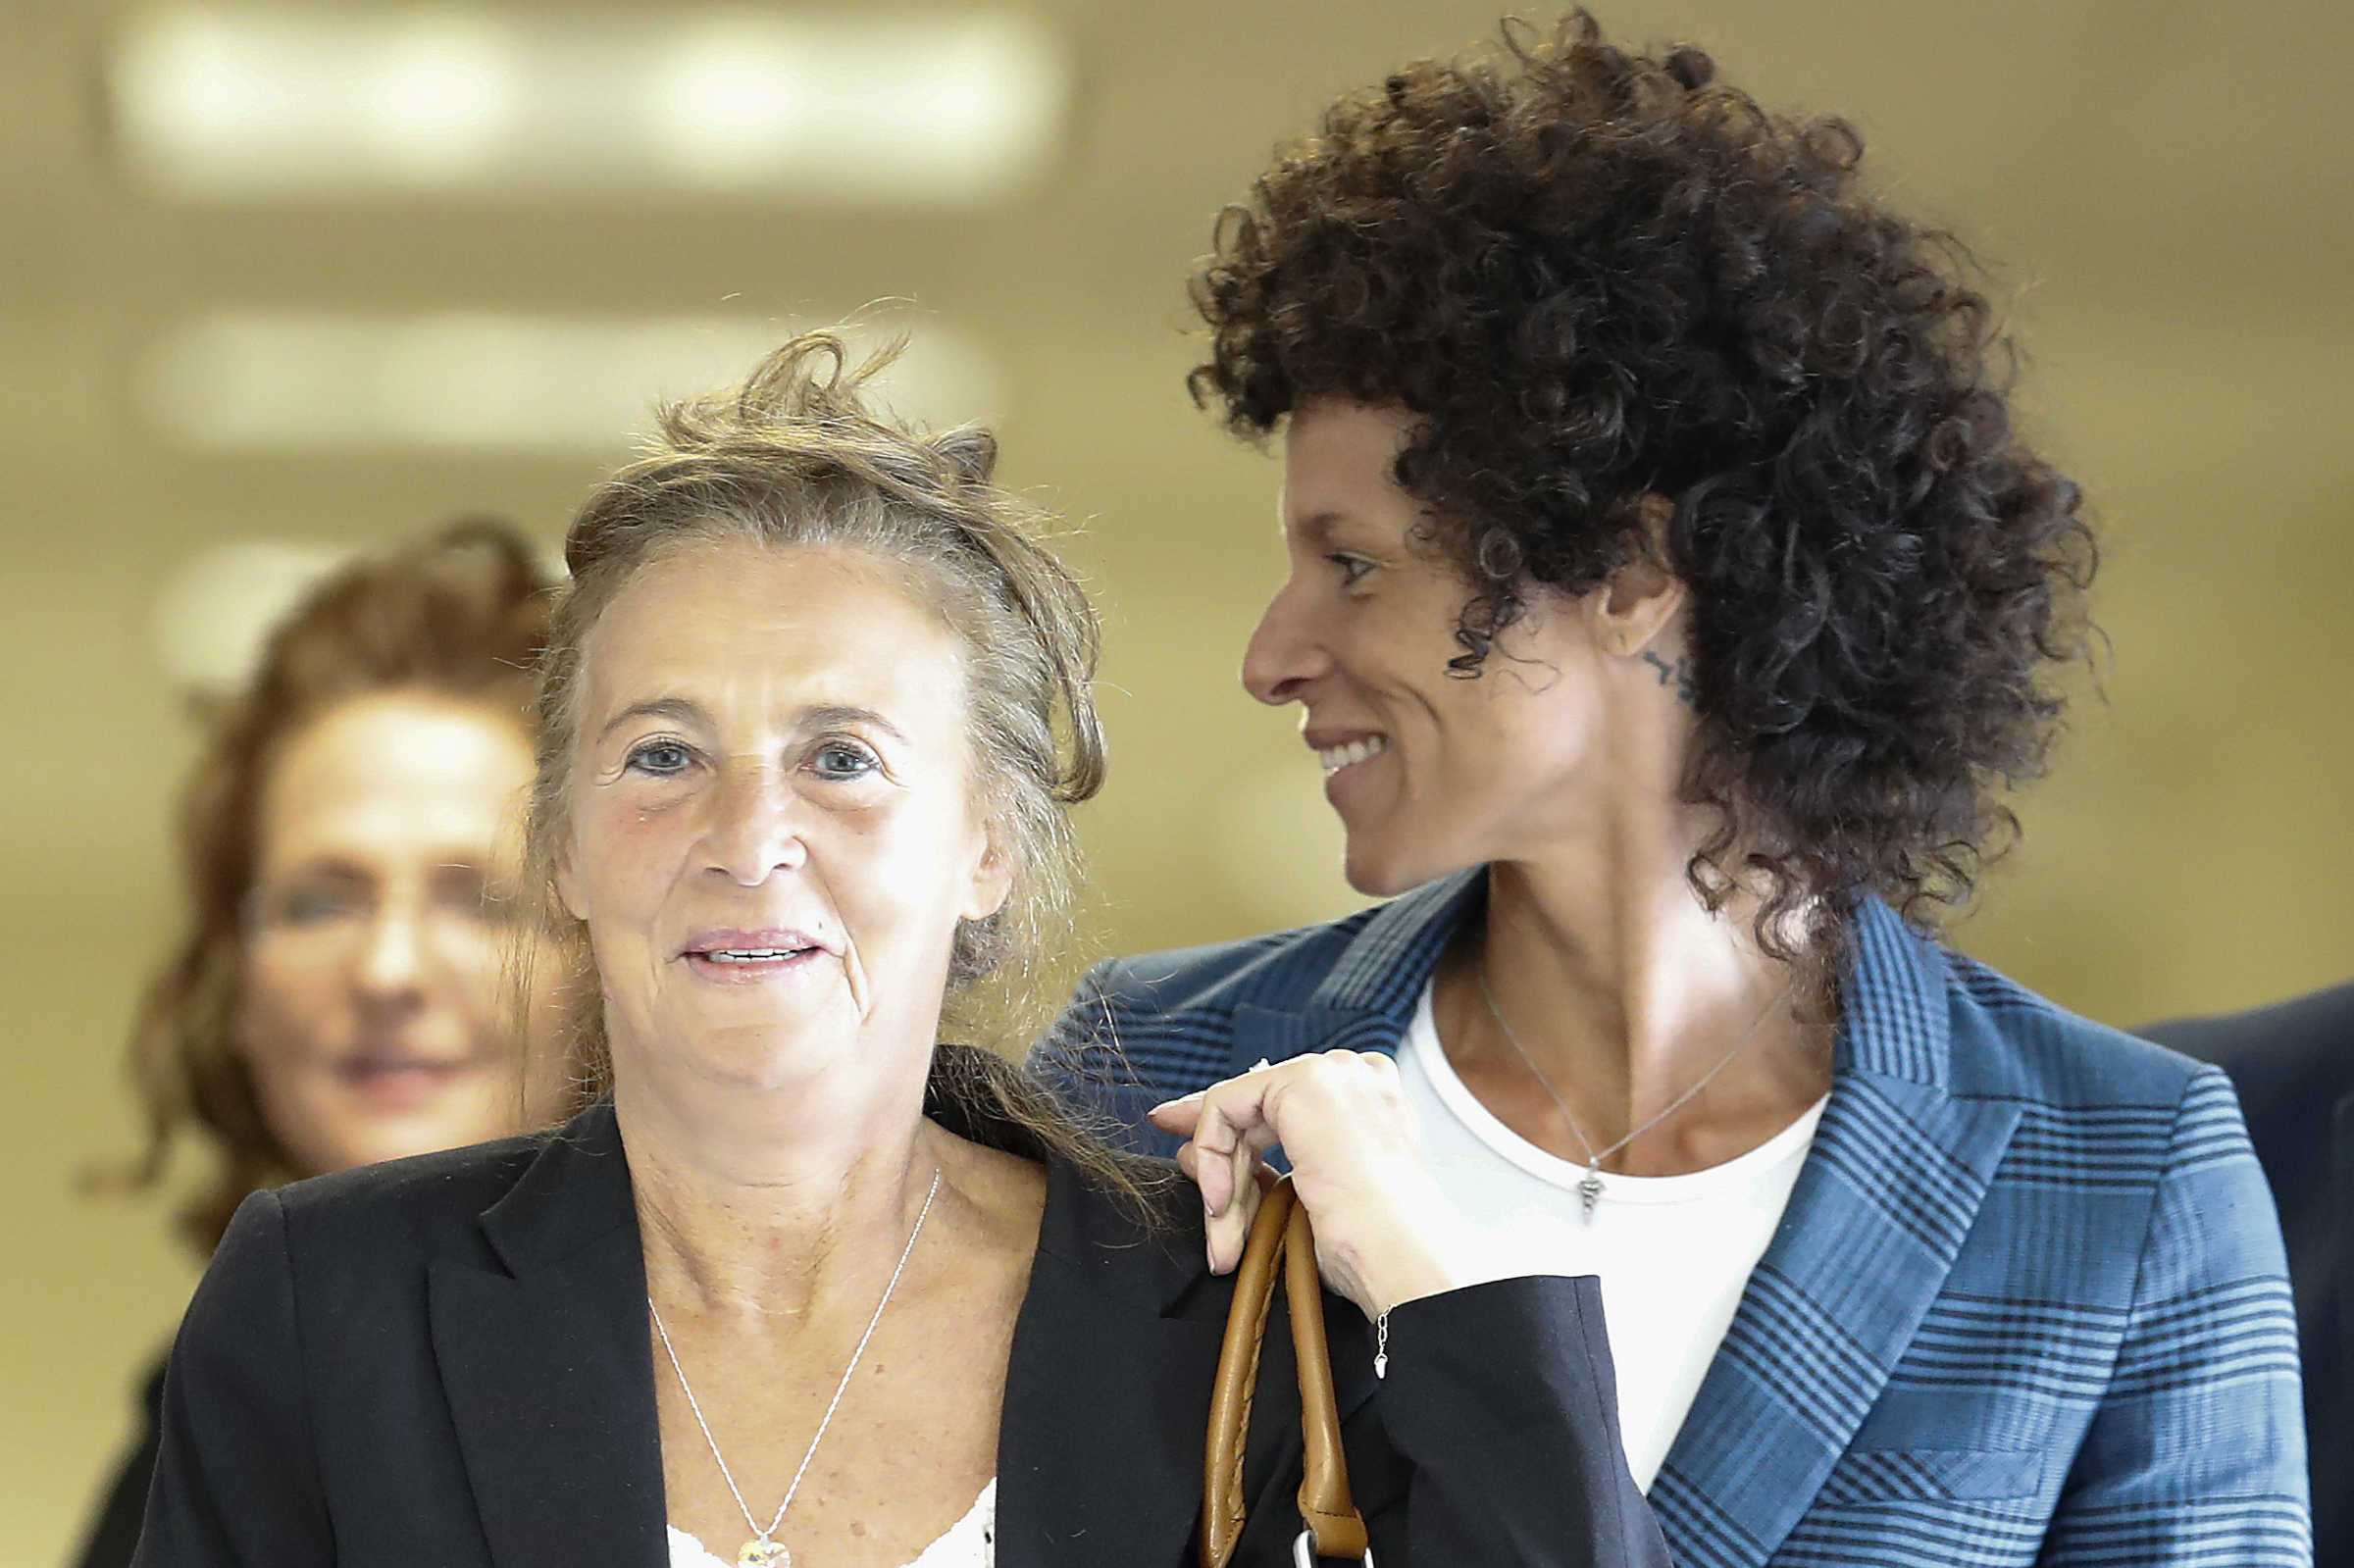 Gianna Constand, left, and her daughter Andrea Constand, right, walk toward the courtroom inside the Montgomery County Courthouse in Norristown, PA on June 12, 2017. Cosby is on trial for sexual assault. Both women testified in the trial.